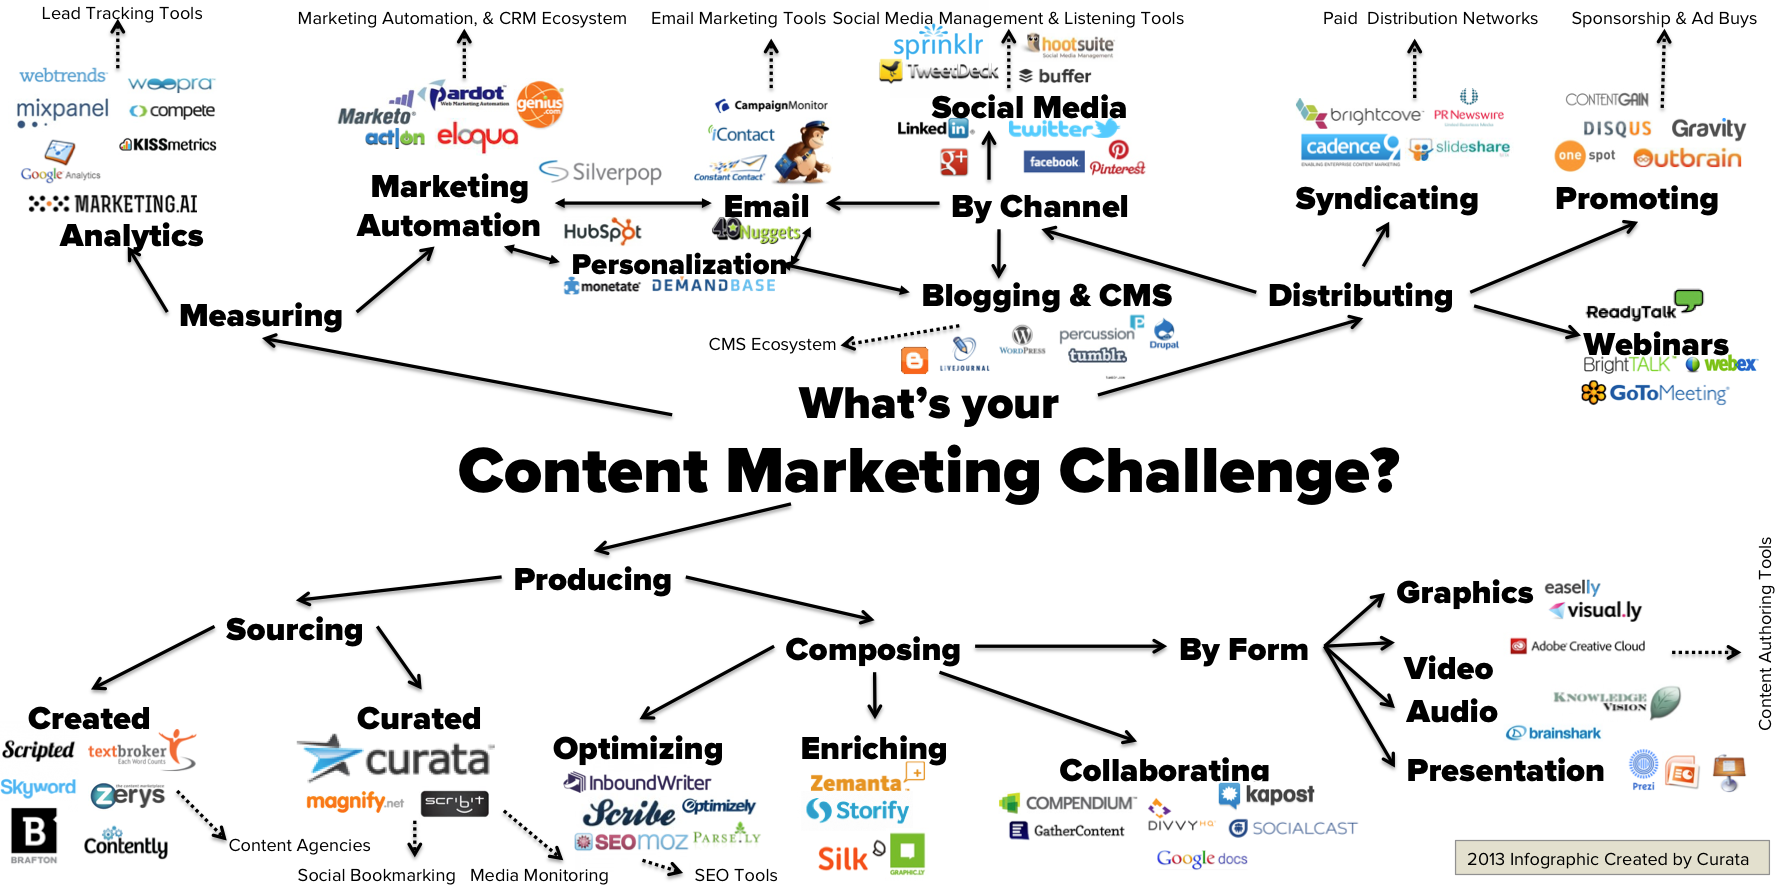 Curata content marketing tools list